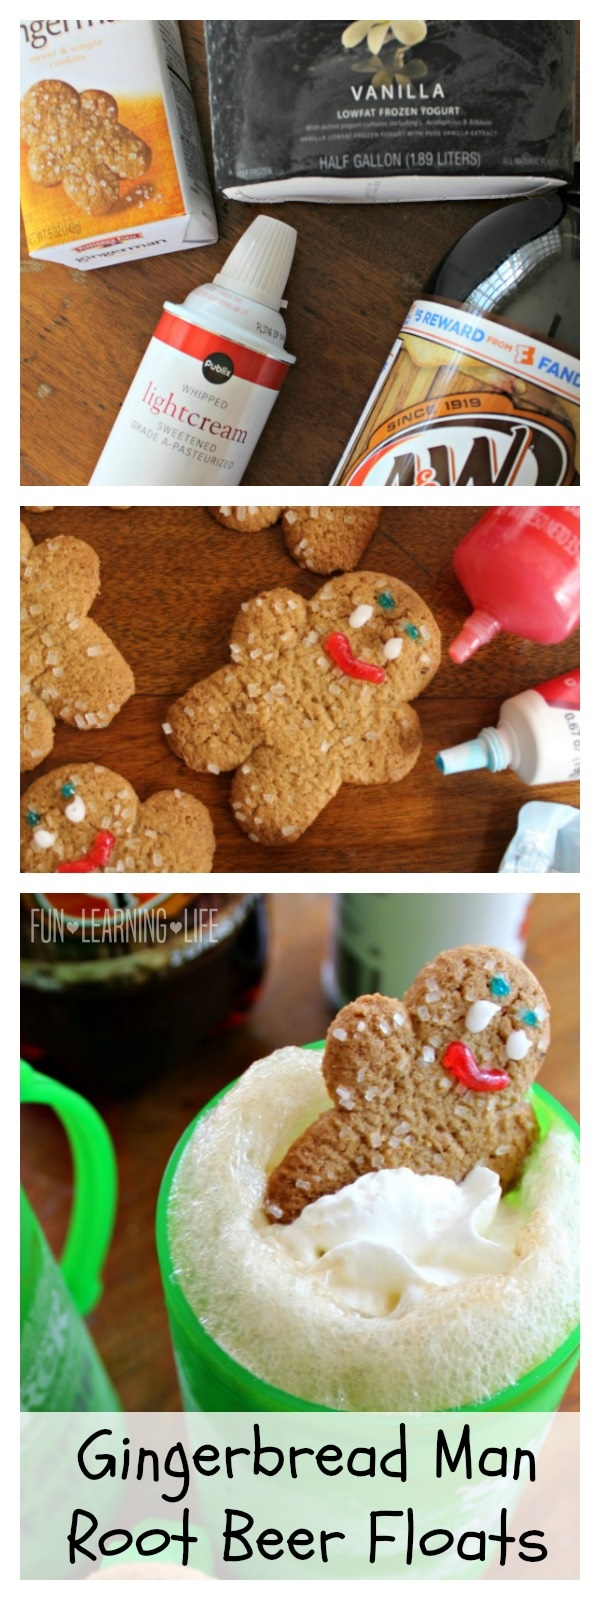 Gingerbread Man Root Beer Floats